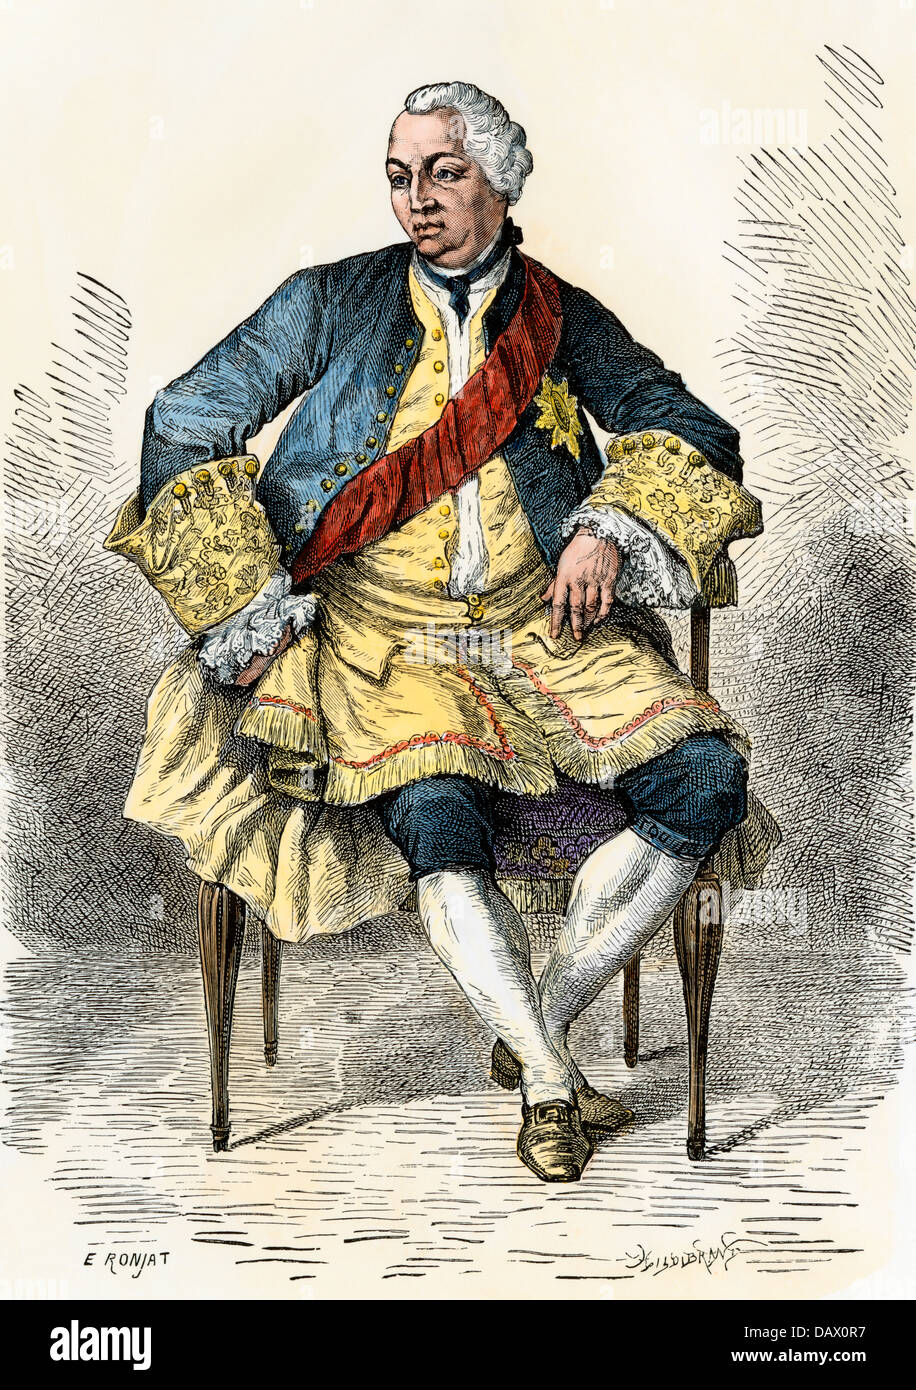 George III, King of England during the American Revolution. Hand-colored woodcut - Stock Image